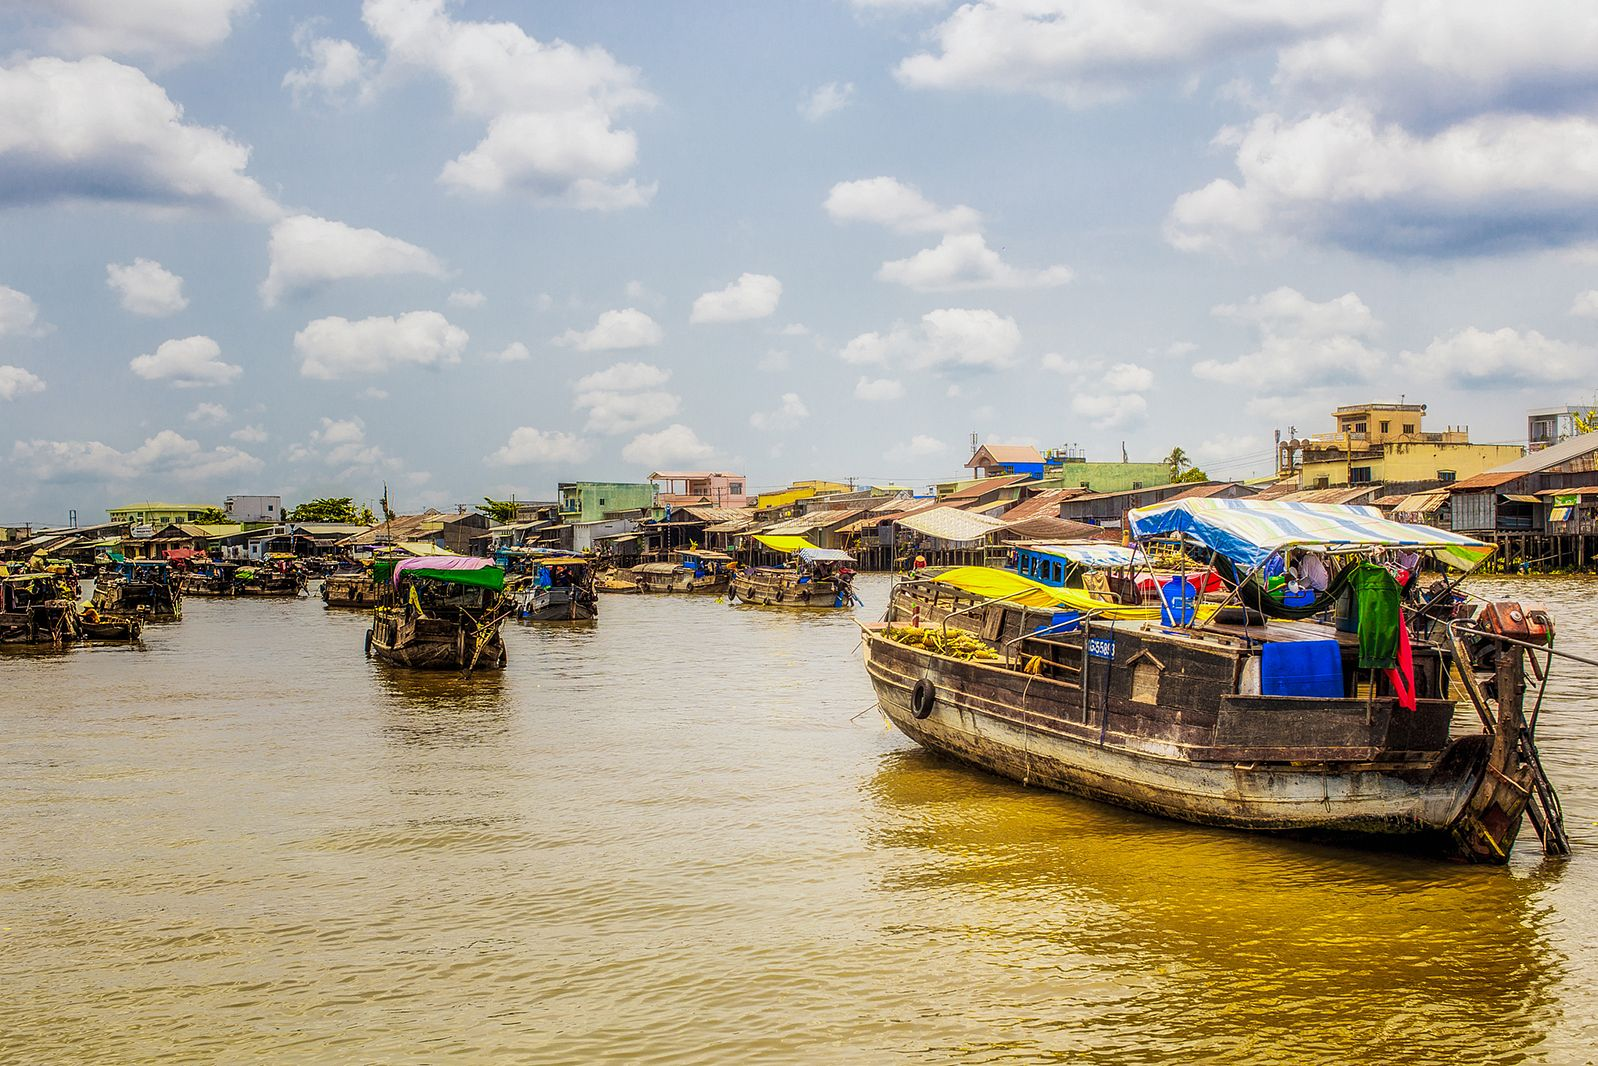 The Mekong Delta is just 0.8 m above sea level